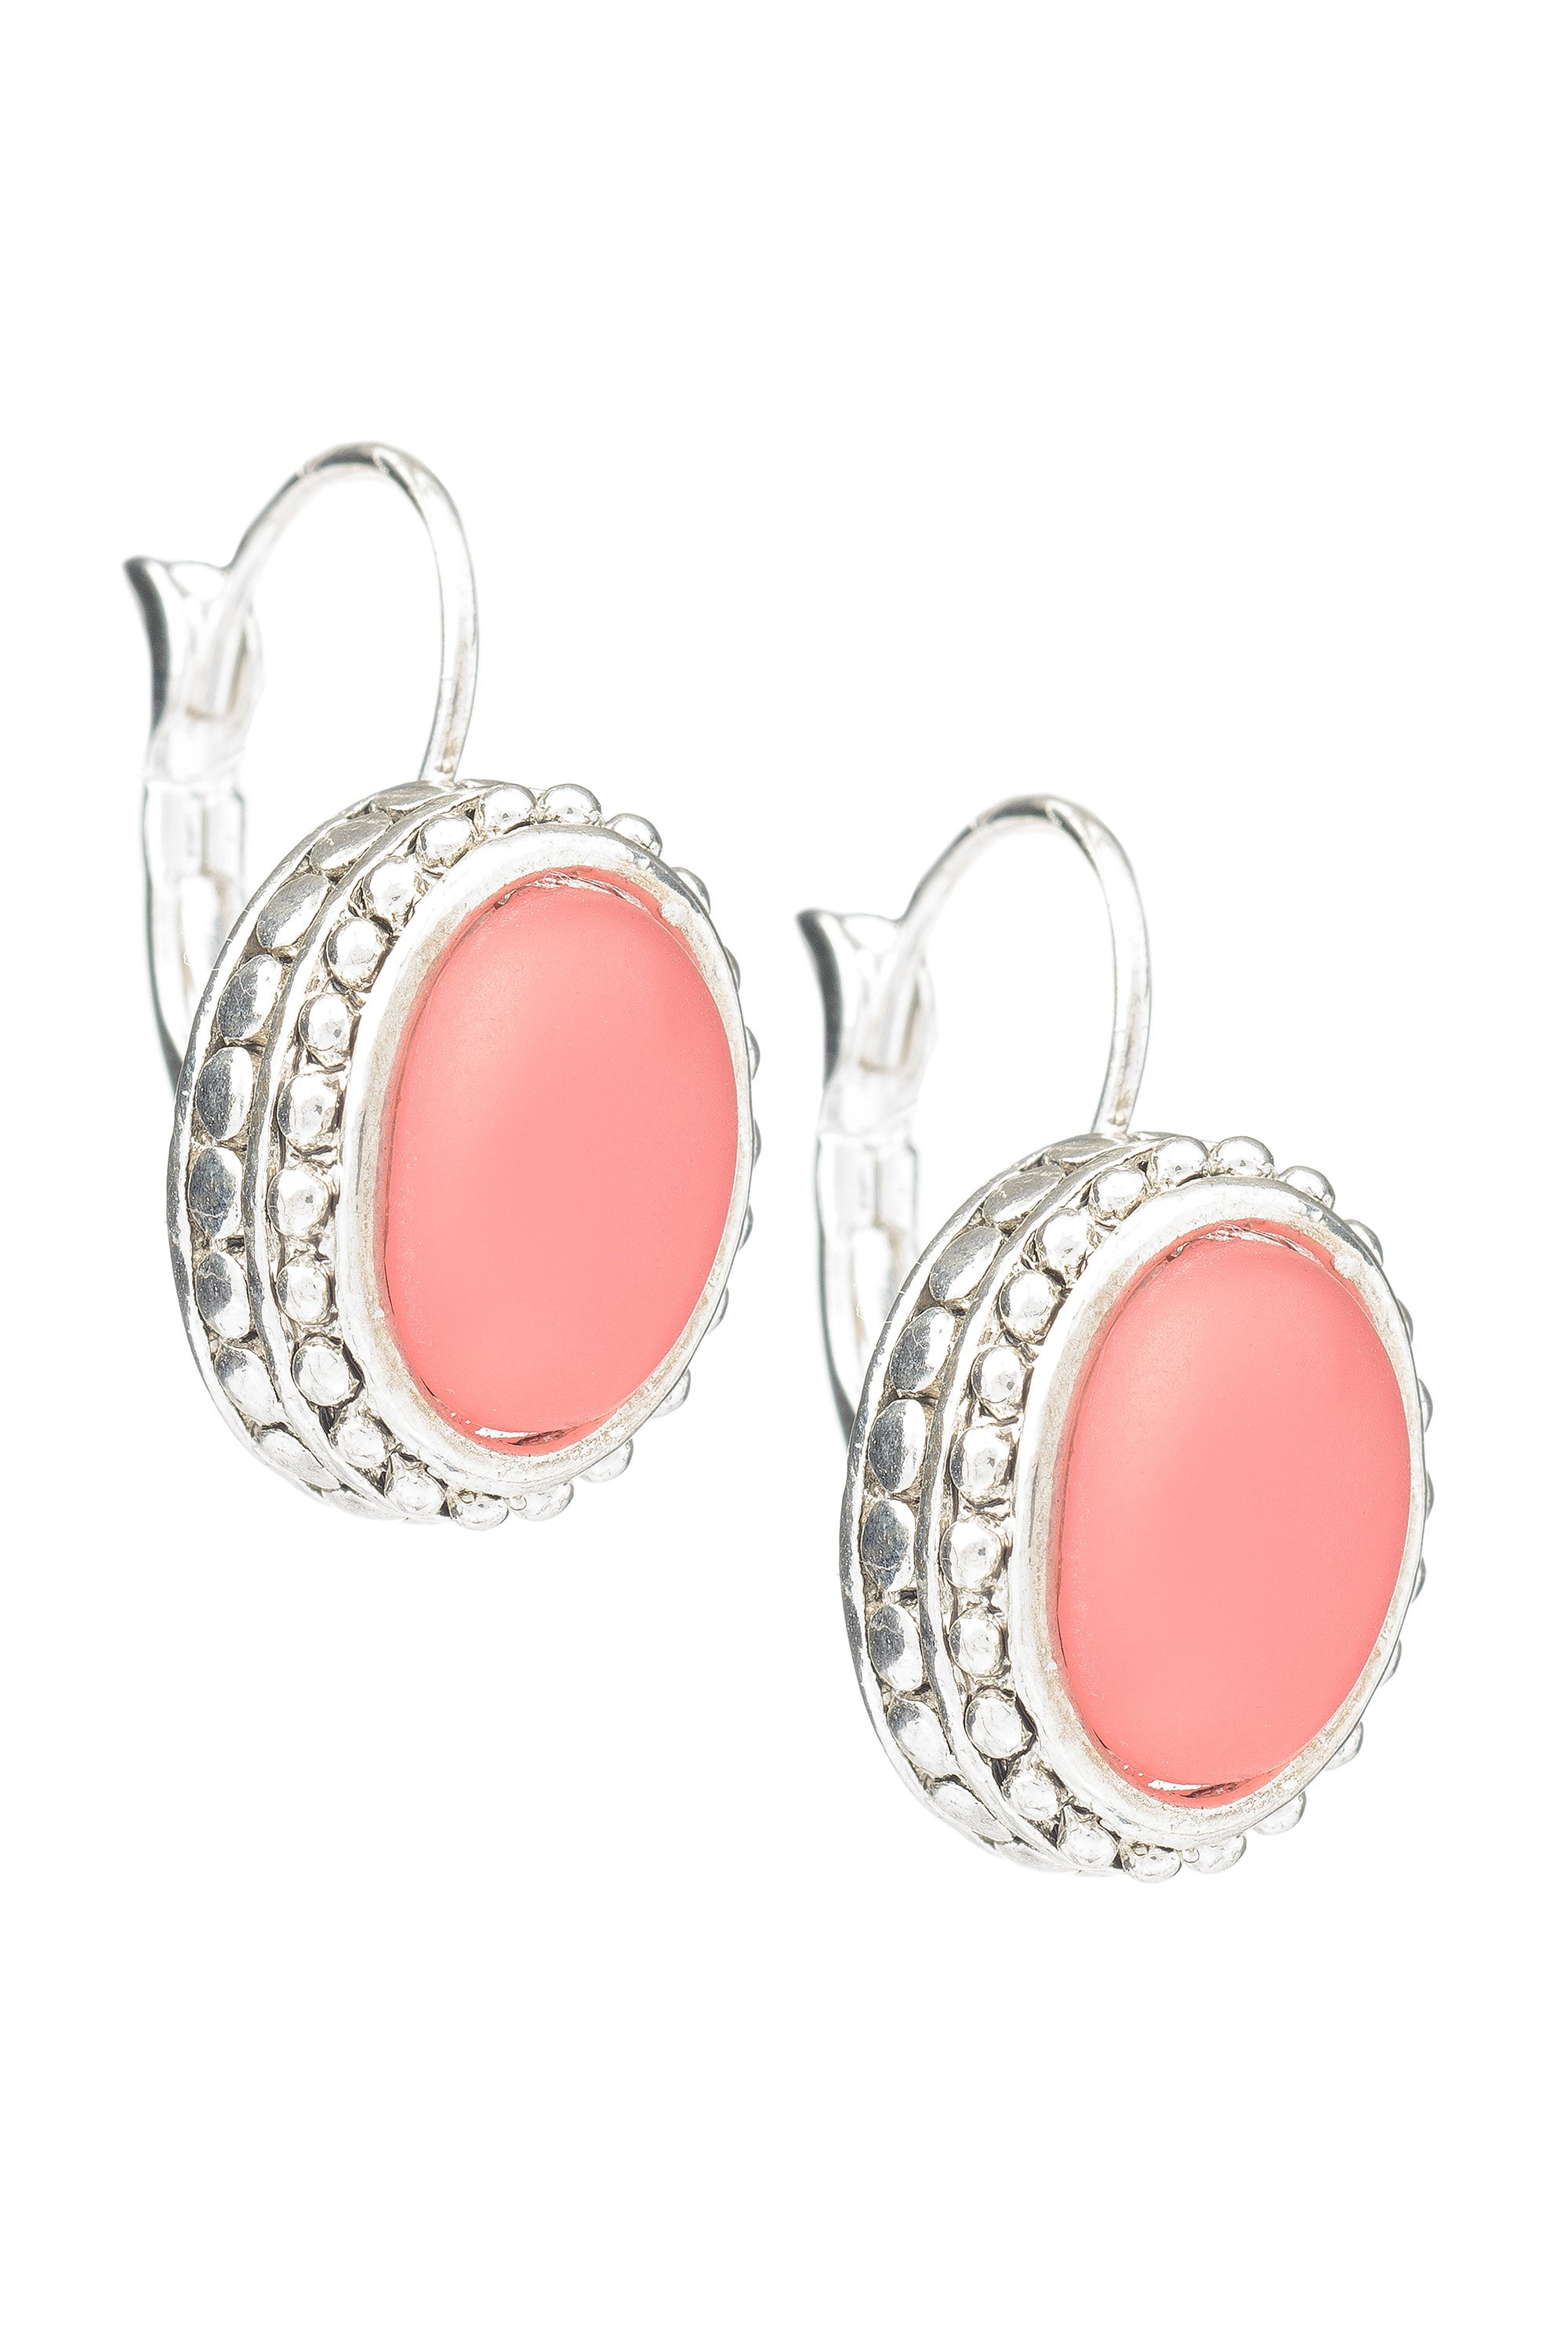 Type 2 Pleasant Peach Earrings